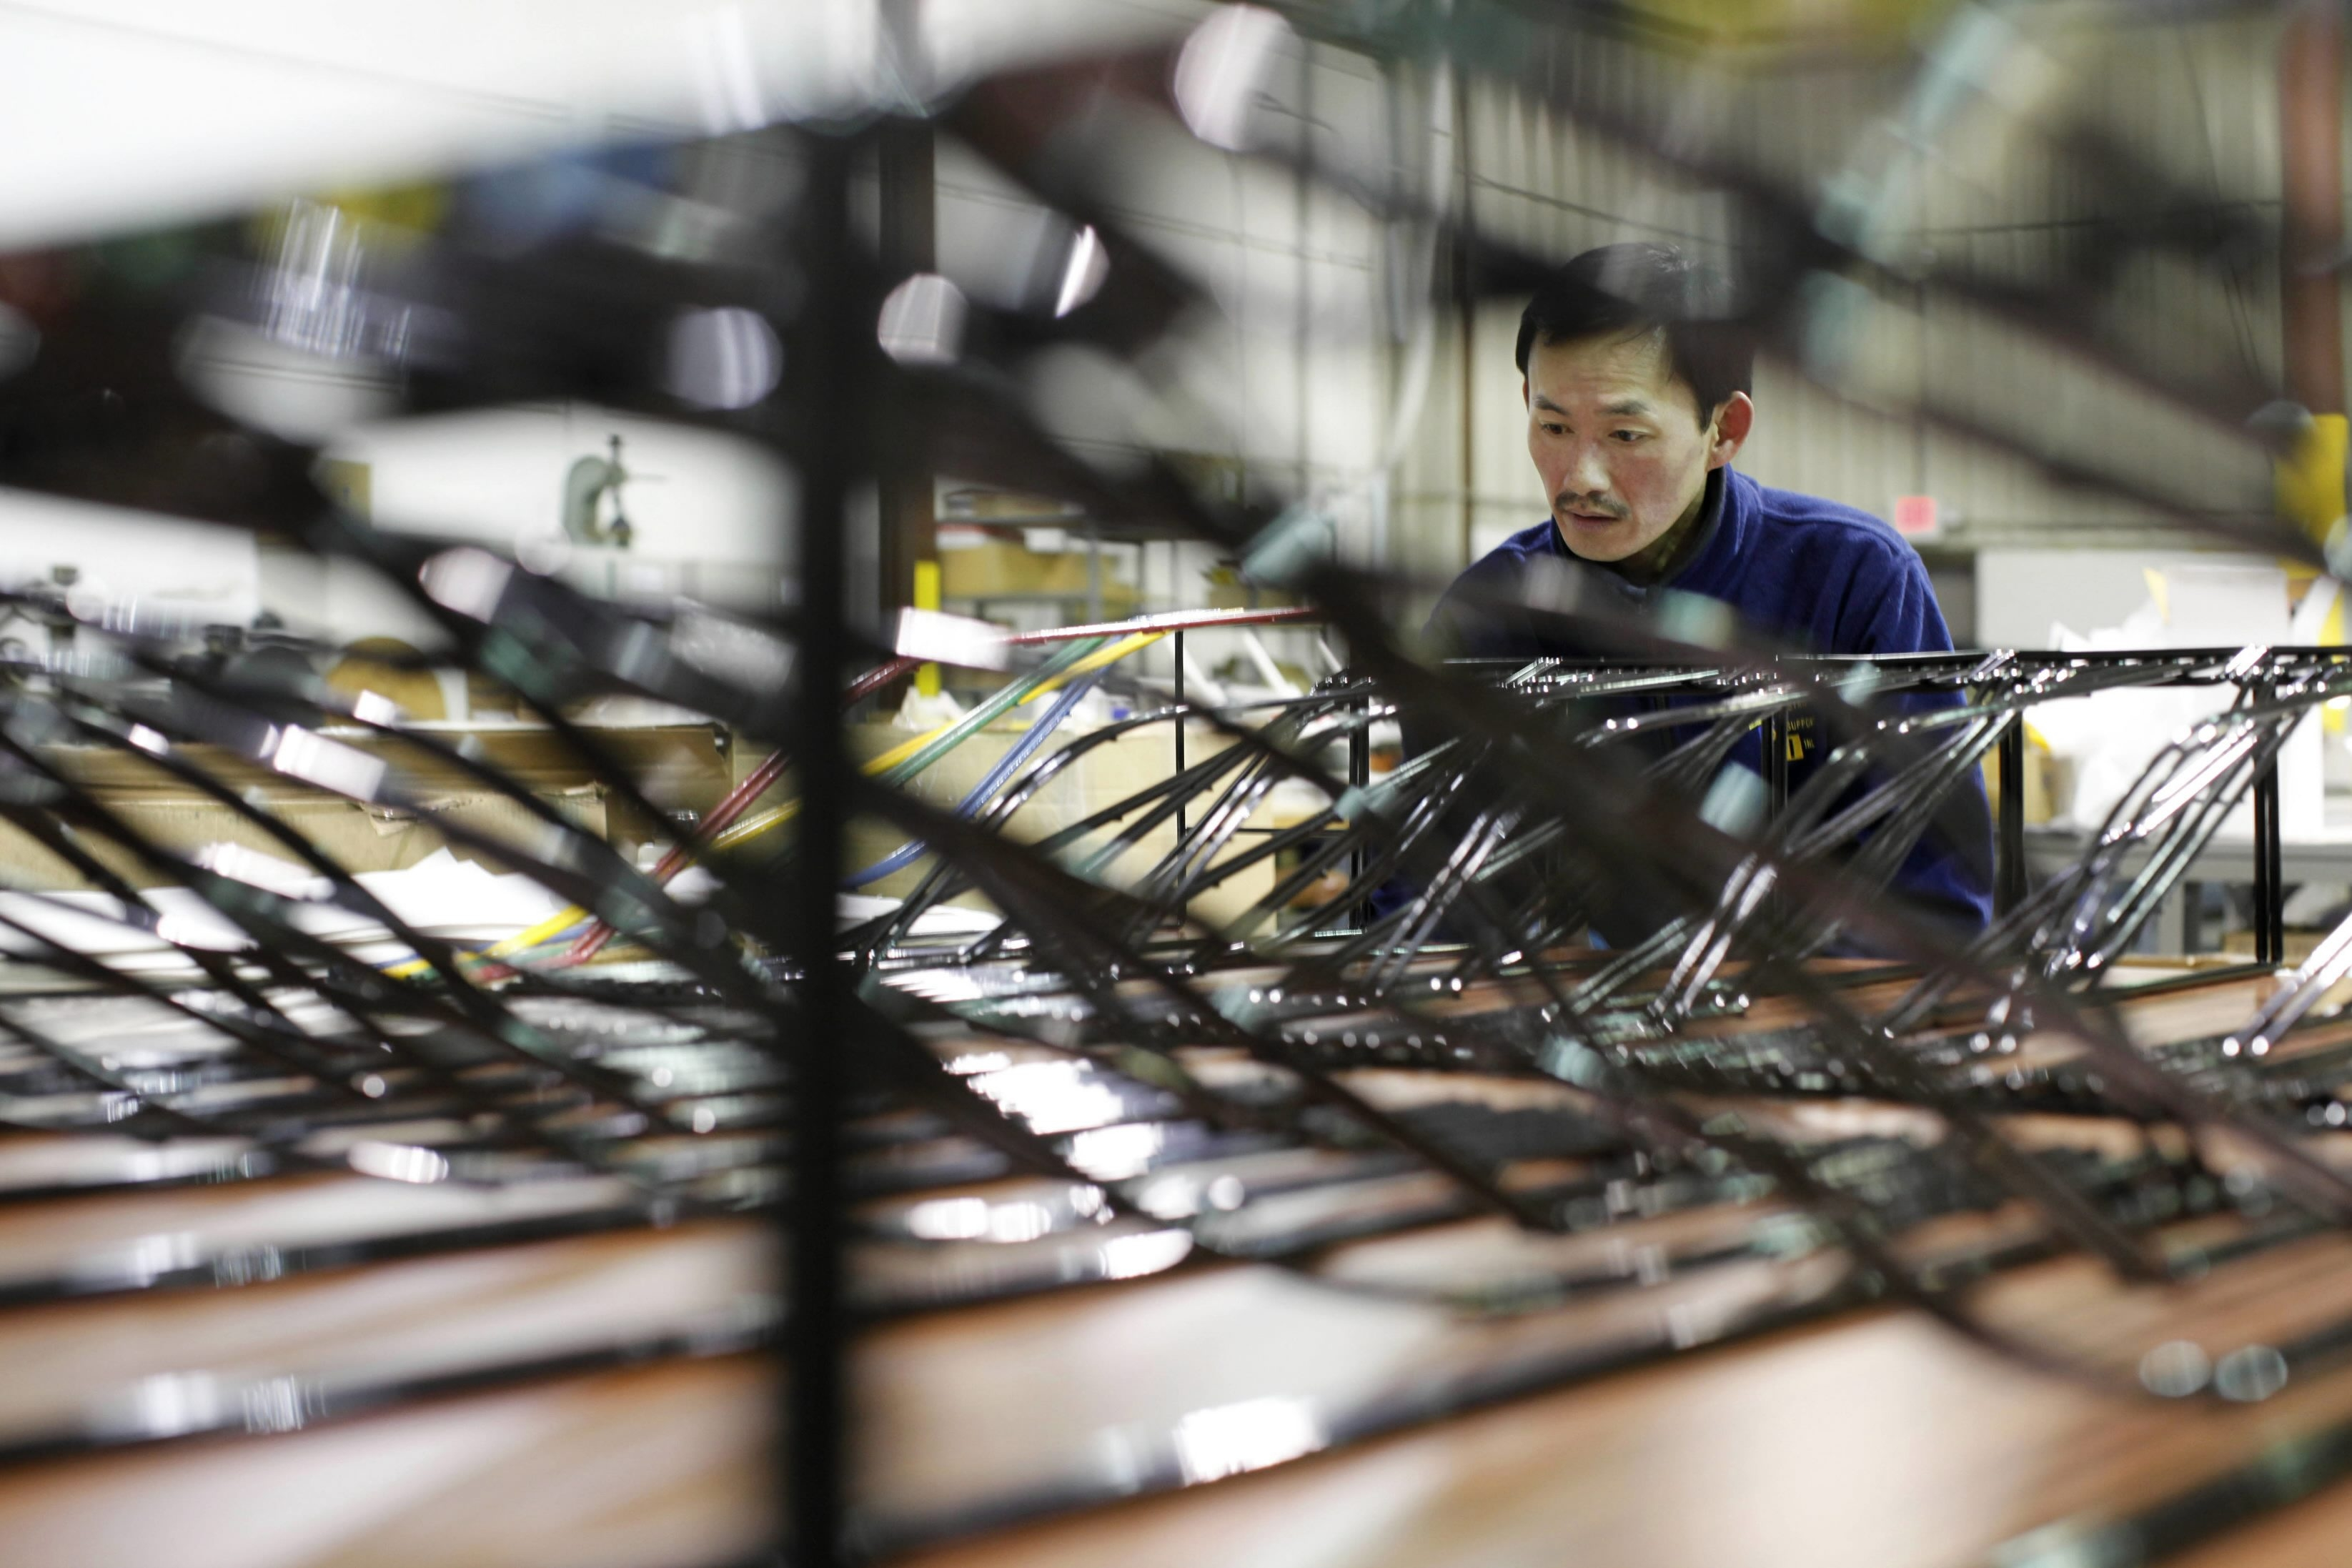 Young Nguyen assembles products at ISI, whose president hopes that state budget incentives will boost firm's competitiveness.